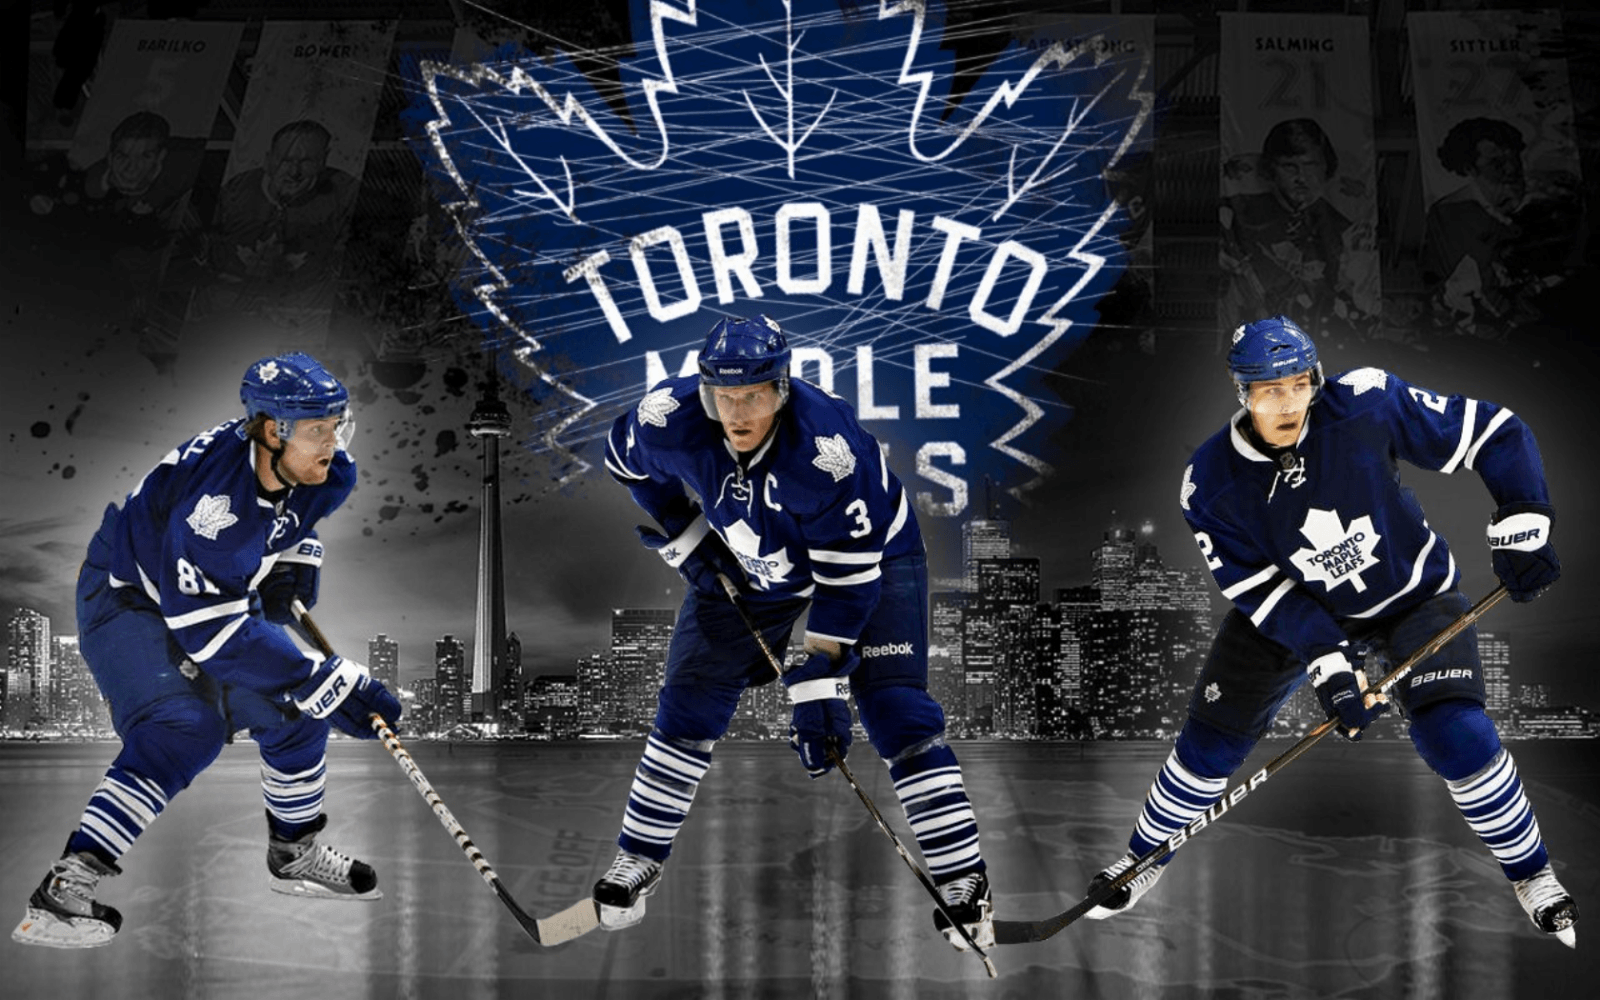 Leafs playoff Wallpapers